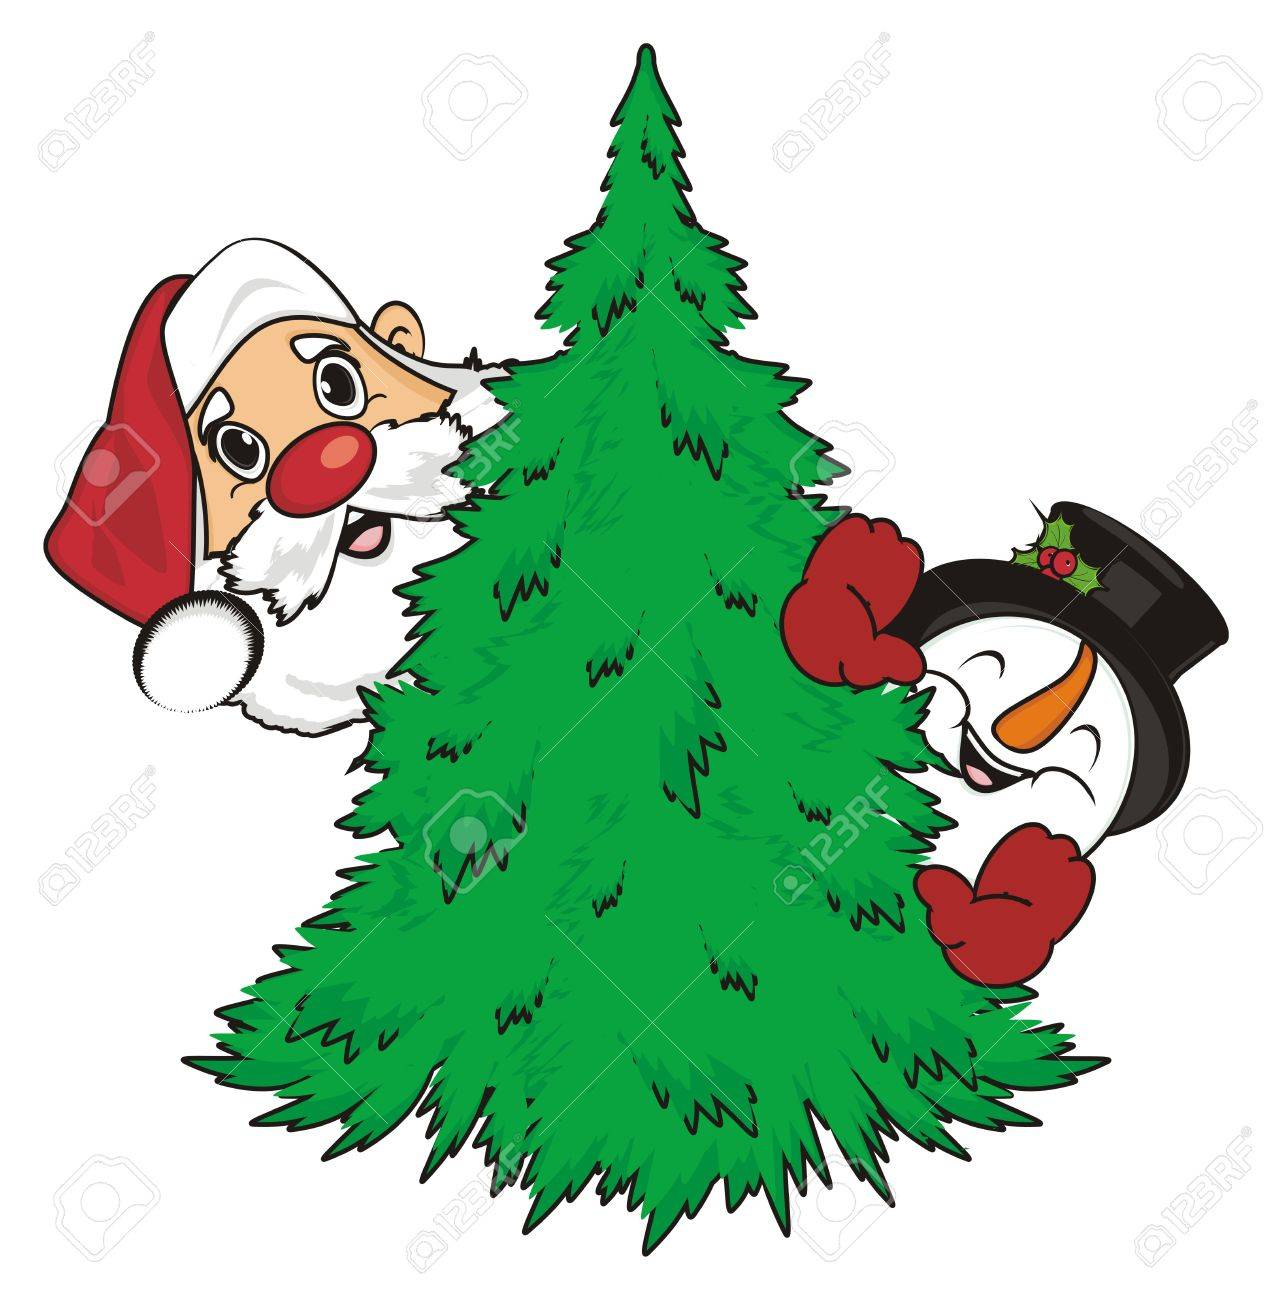 Heads Of Santa Claus And Snowman Peek Up From Christmas Tree Stock Photo Picture And Royalty Free Image Image 82430818